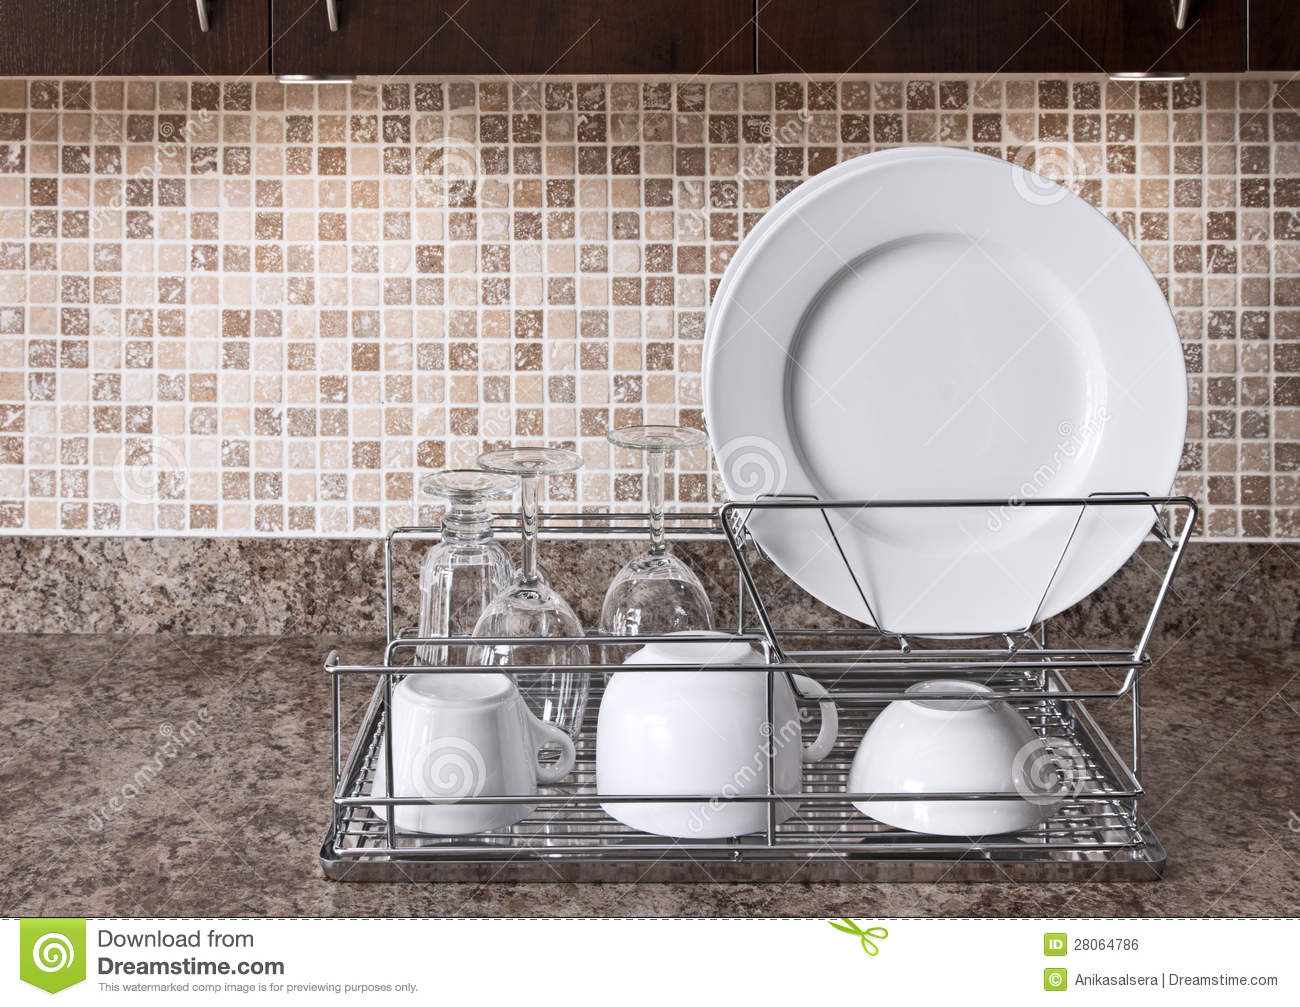 Kitchen Dish Rack Dish Rack On Kitchen Countertop Royalty Free Stock Image Image